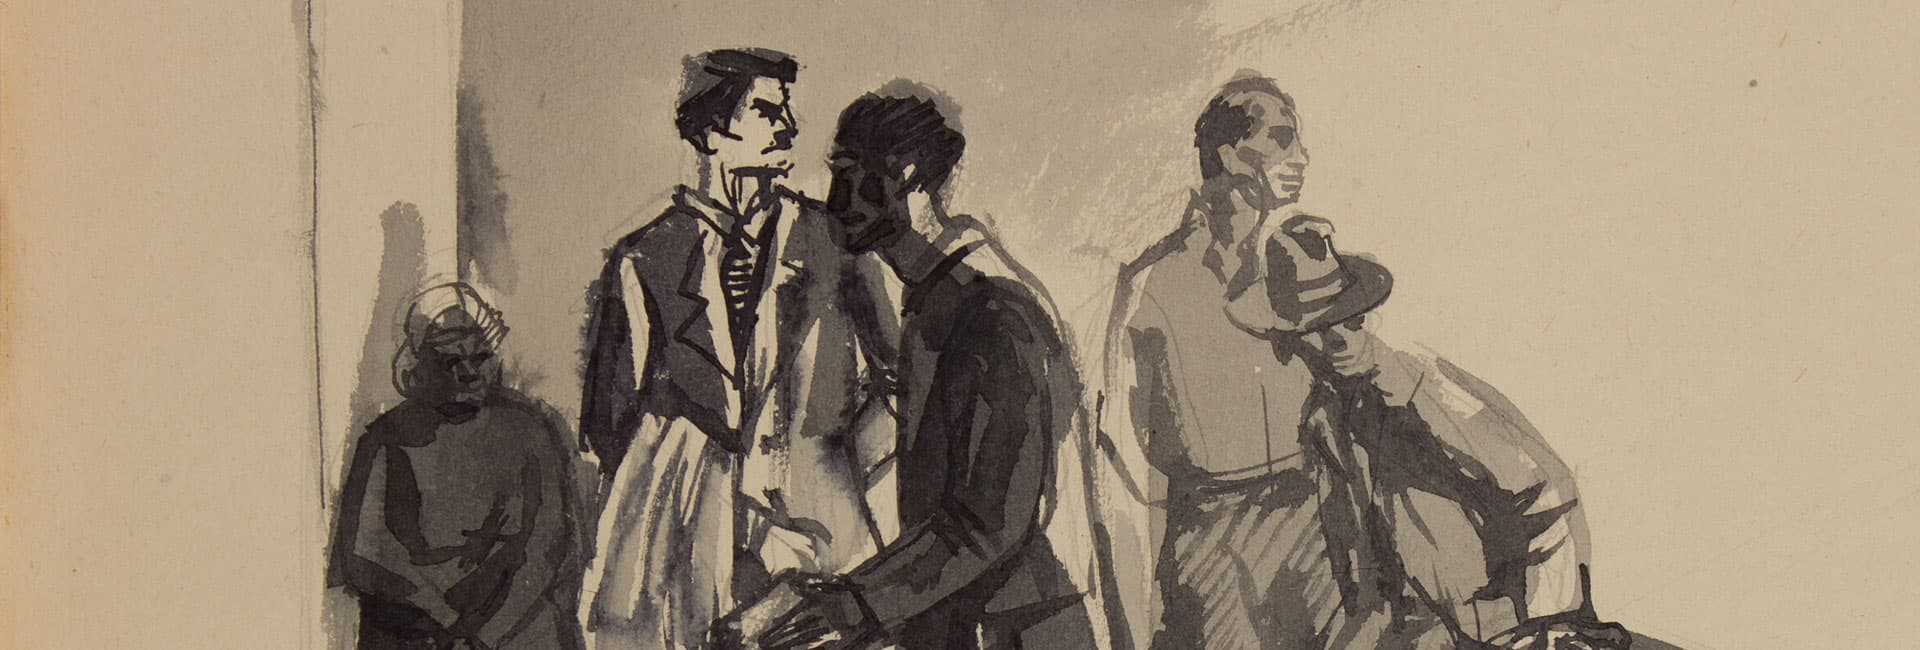 [Group Scene no.238] detail Undated Watercolour and gouache on paper 15 x 21 cm Private collection © Andrzej Wróblewski Foundation